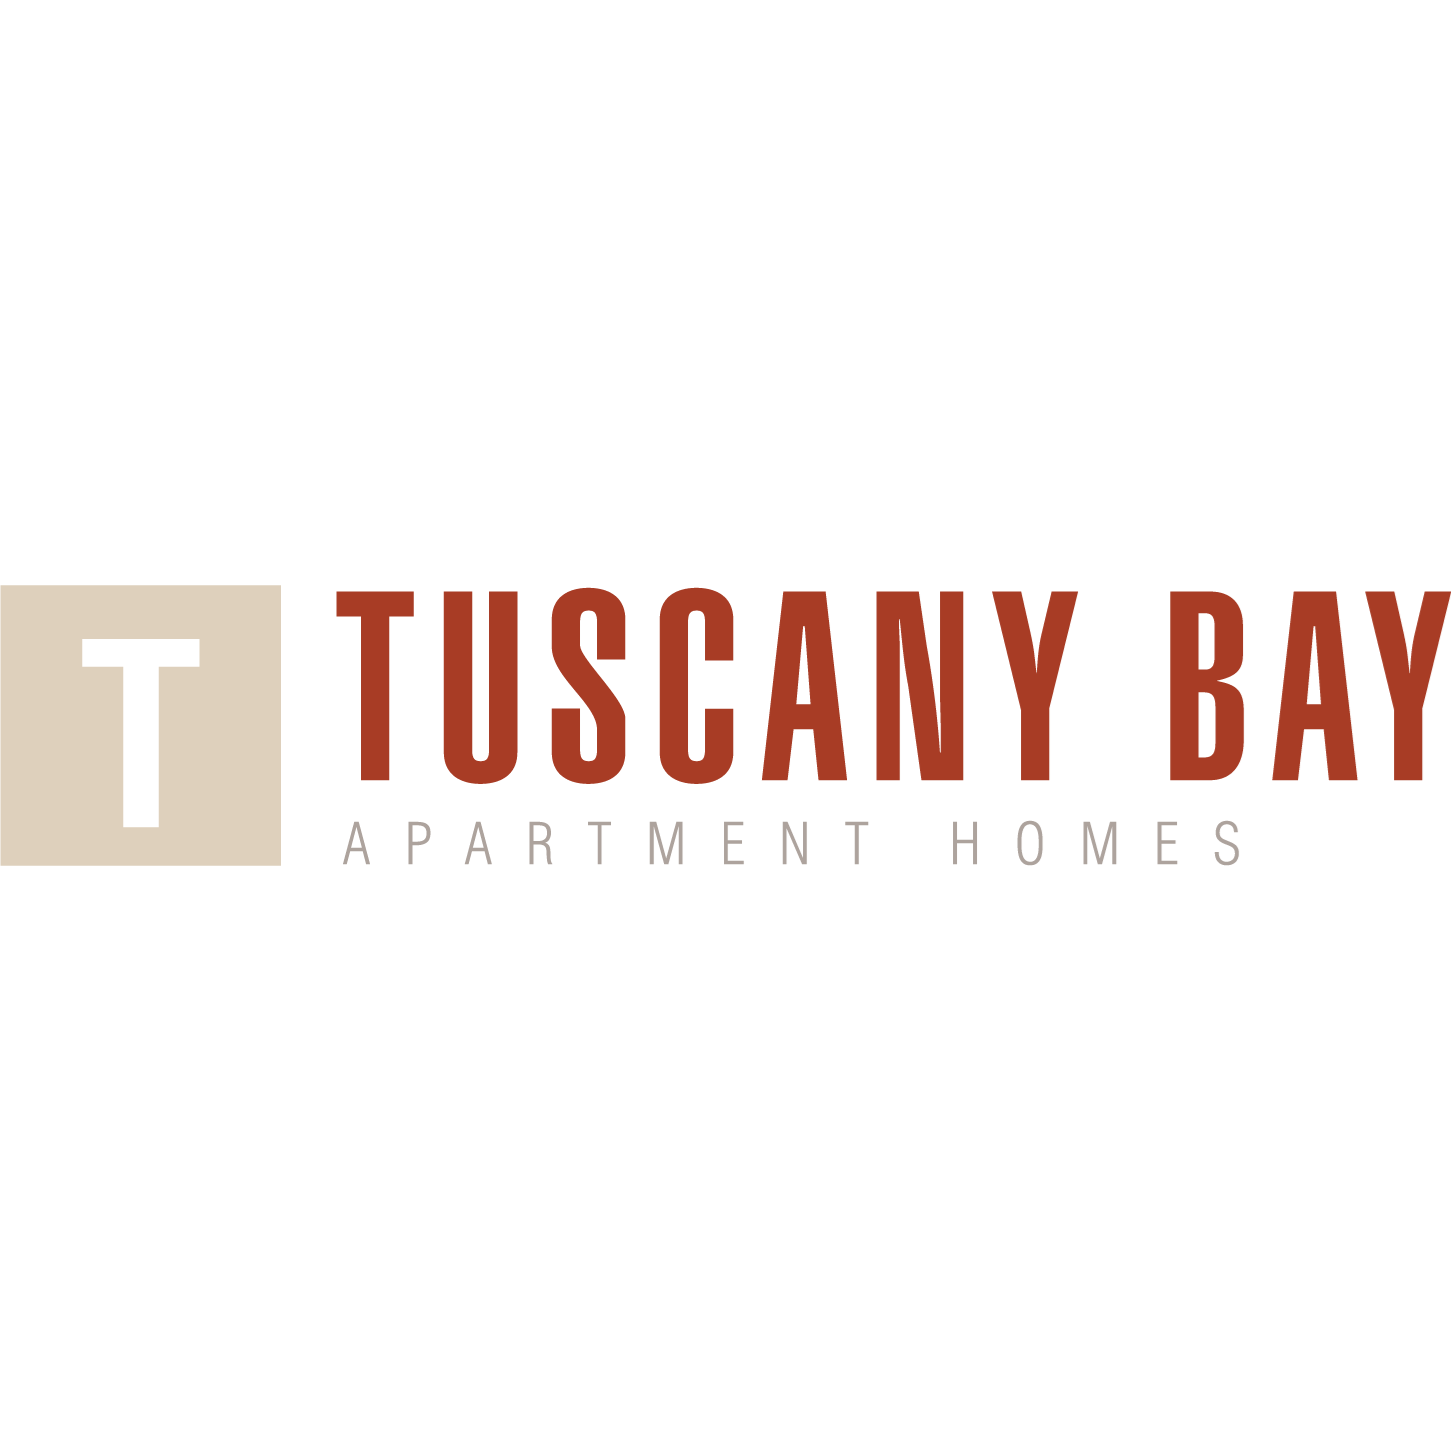 Tuscany Bay Apartments - Tampa, FL - Apartments